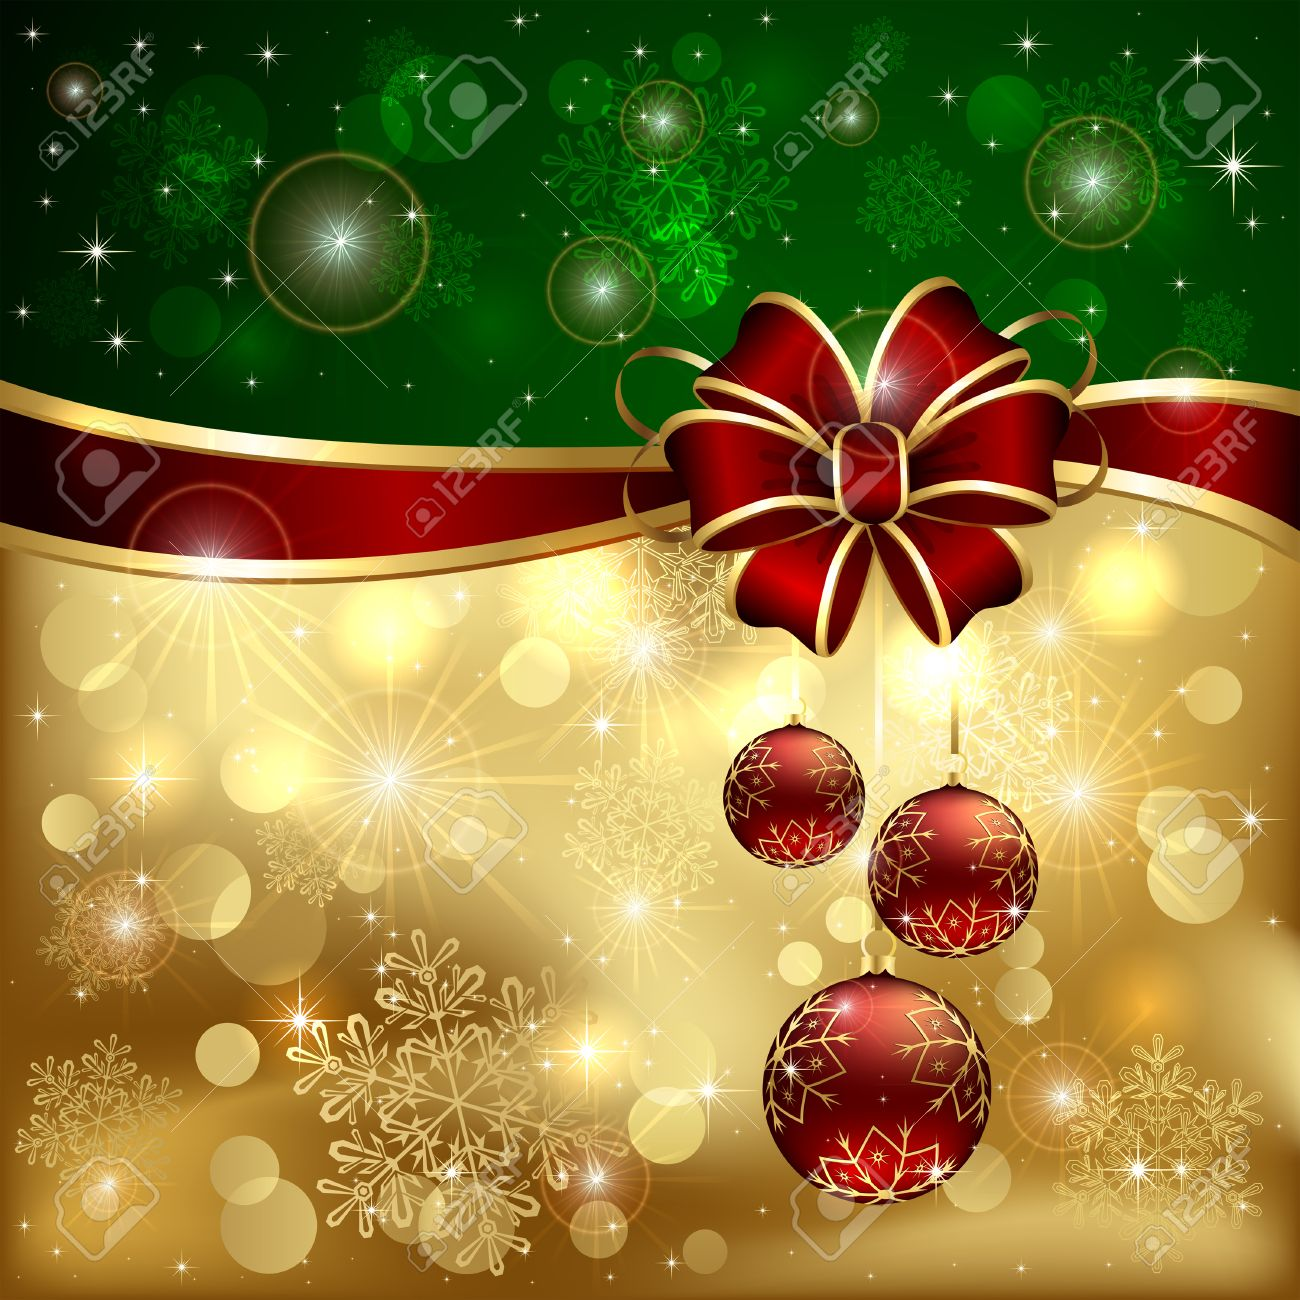 Green - Gold Christmas Background With Red Bow, Three Baubles ...